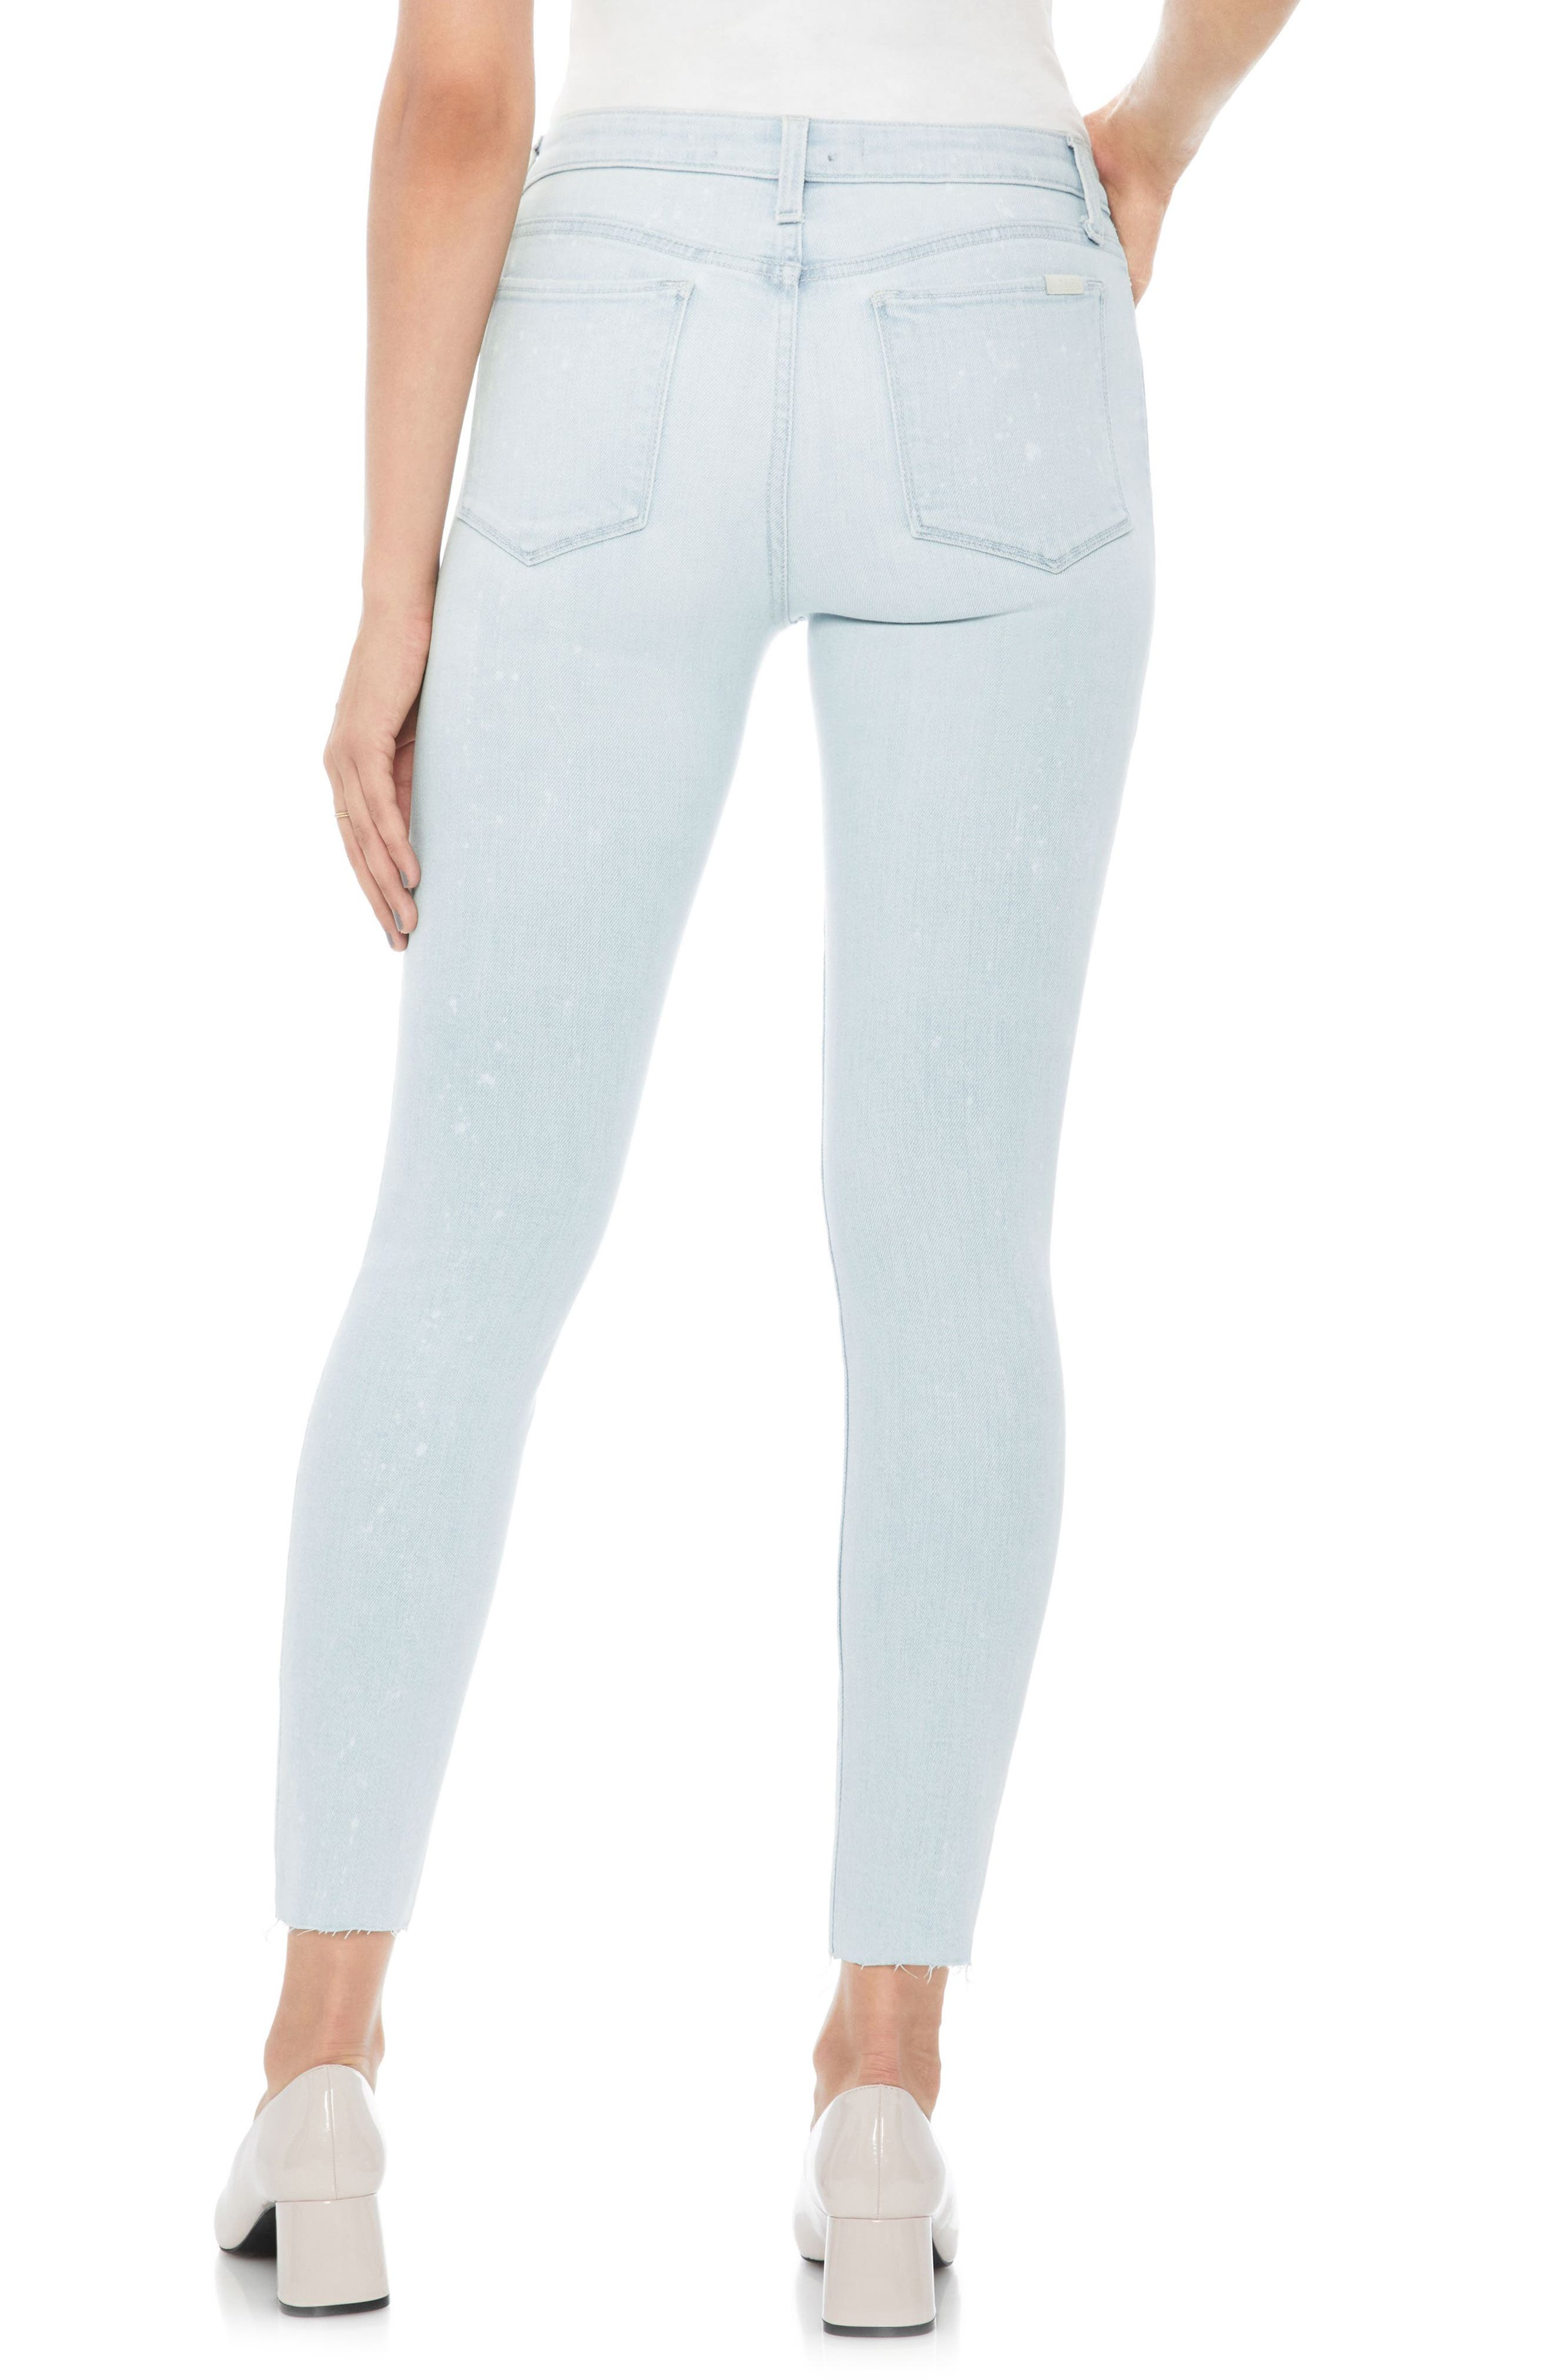 JOE'S,                             Flawless - Charlie High Waist Ankle Skinny Jeans,                             Alternate thumbnail 2, color,                             450